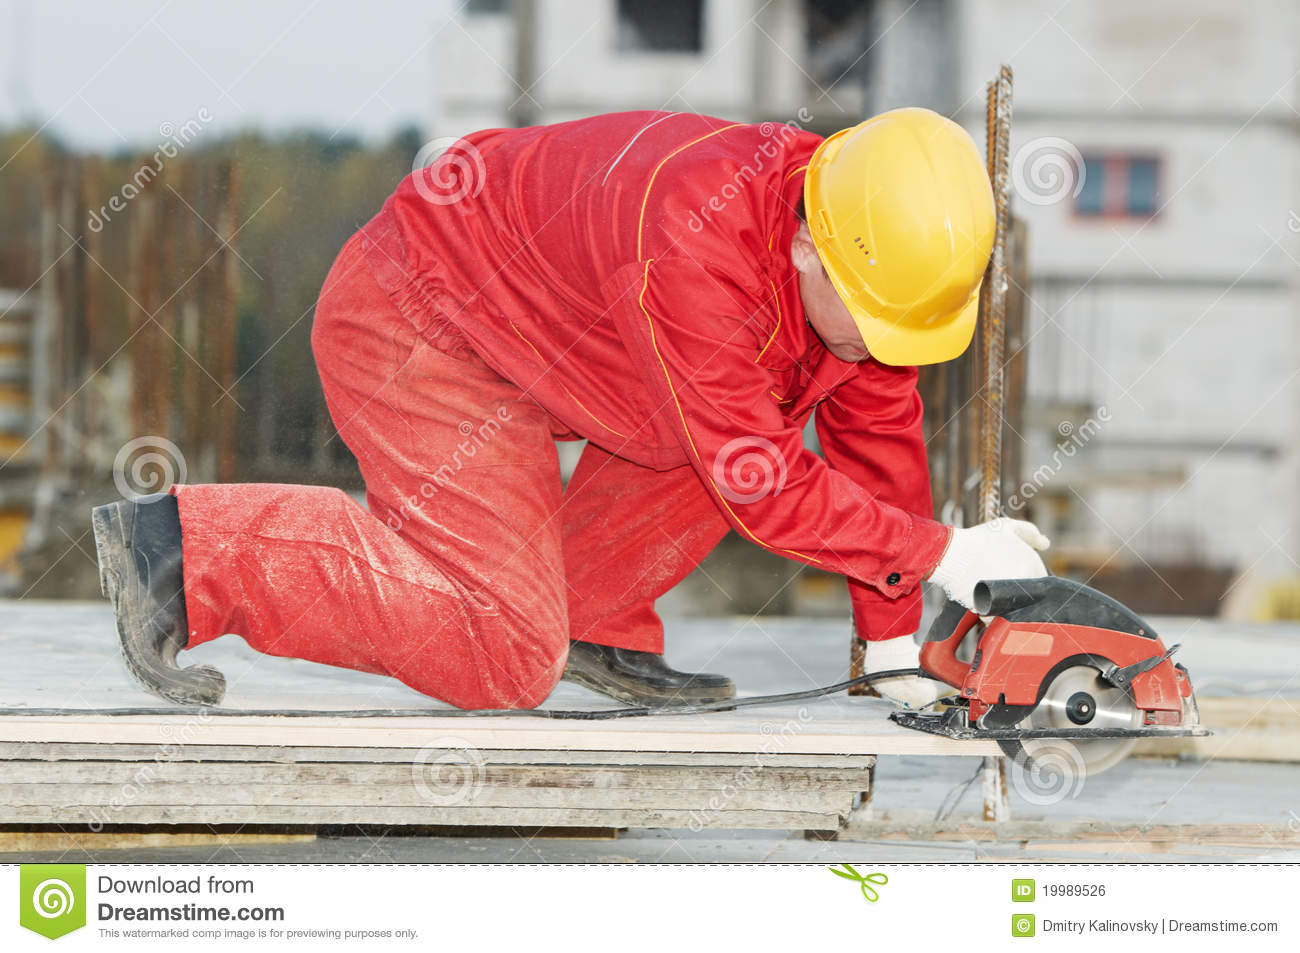 Cutting Construction Wood Board Royalty Free Stock Image   Image